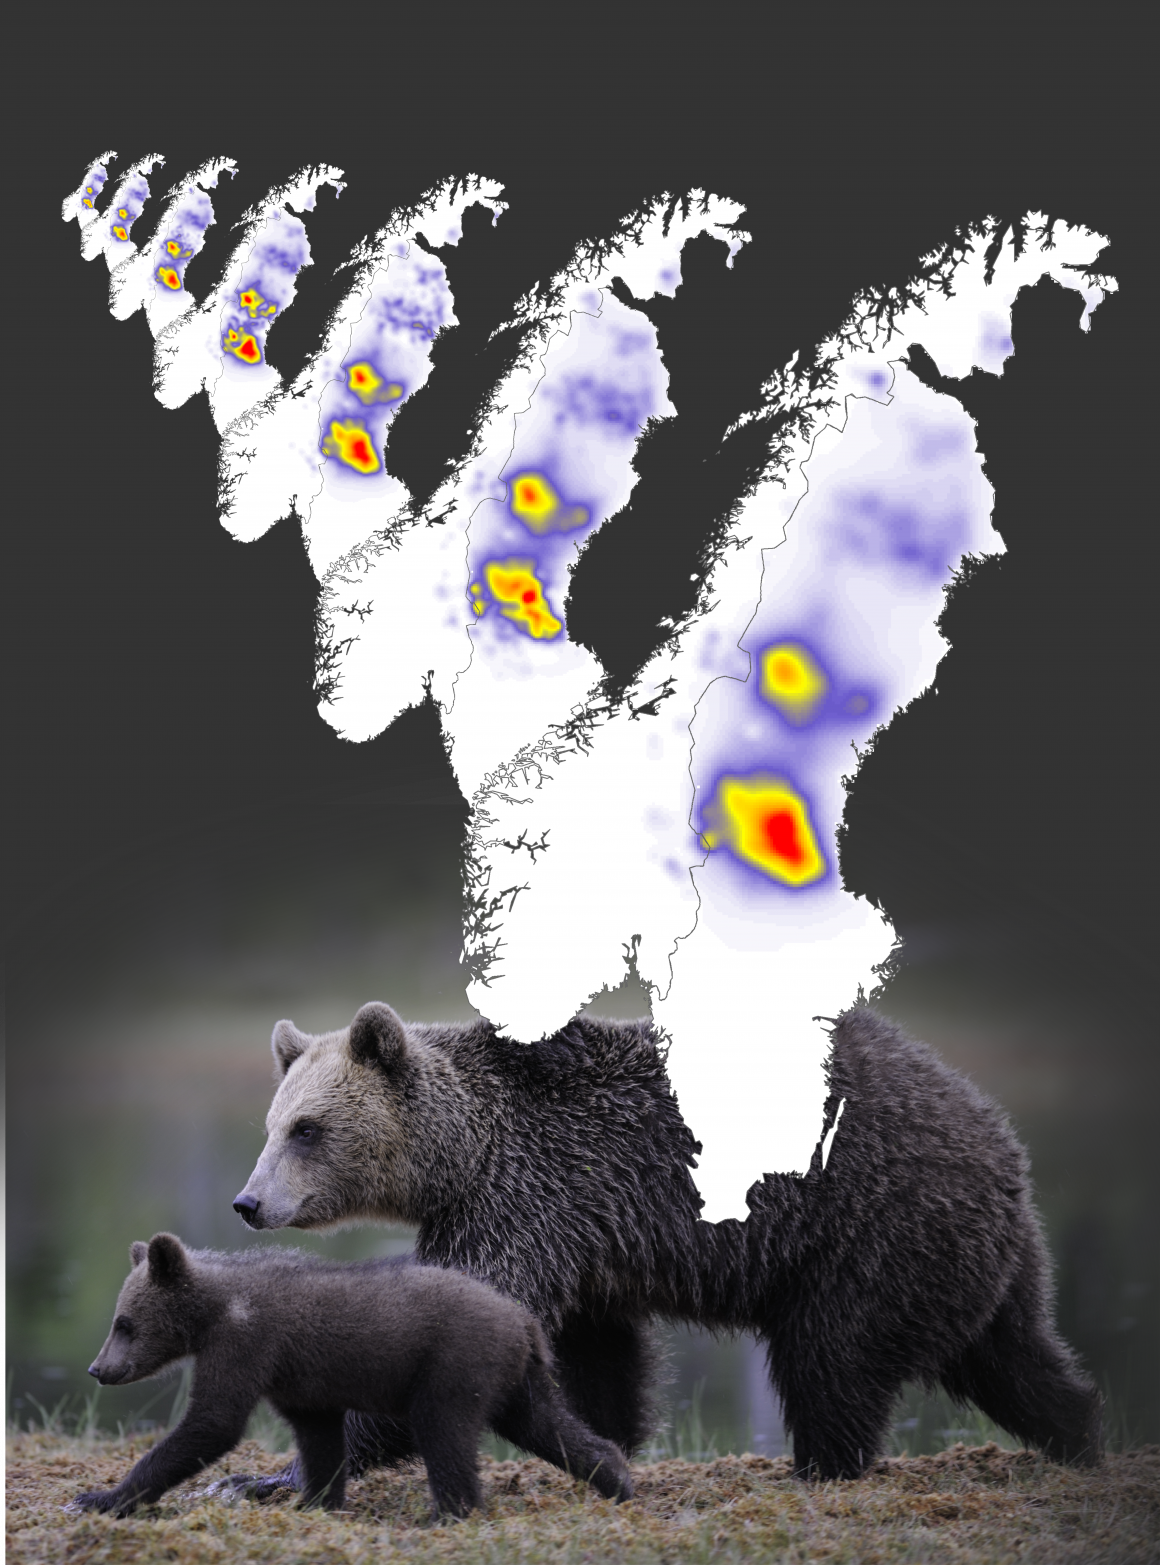 Annual maps of brown bear population density in Scandinavia from 2012 to 2018.